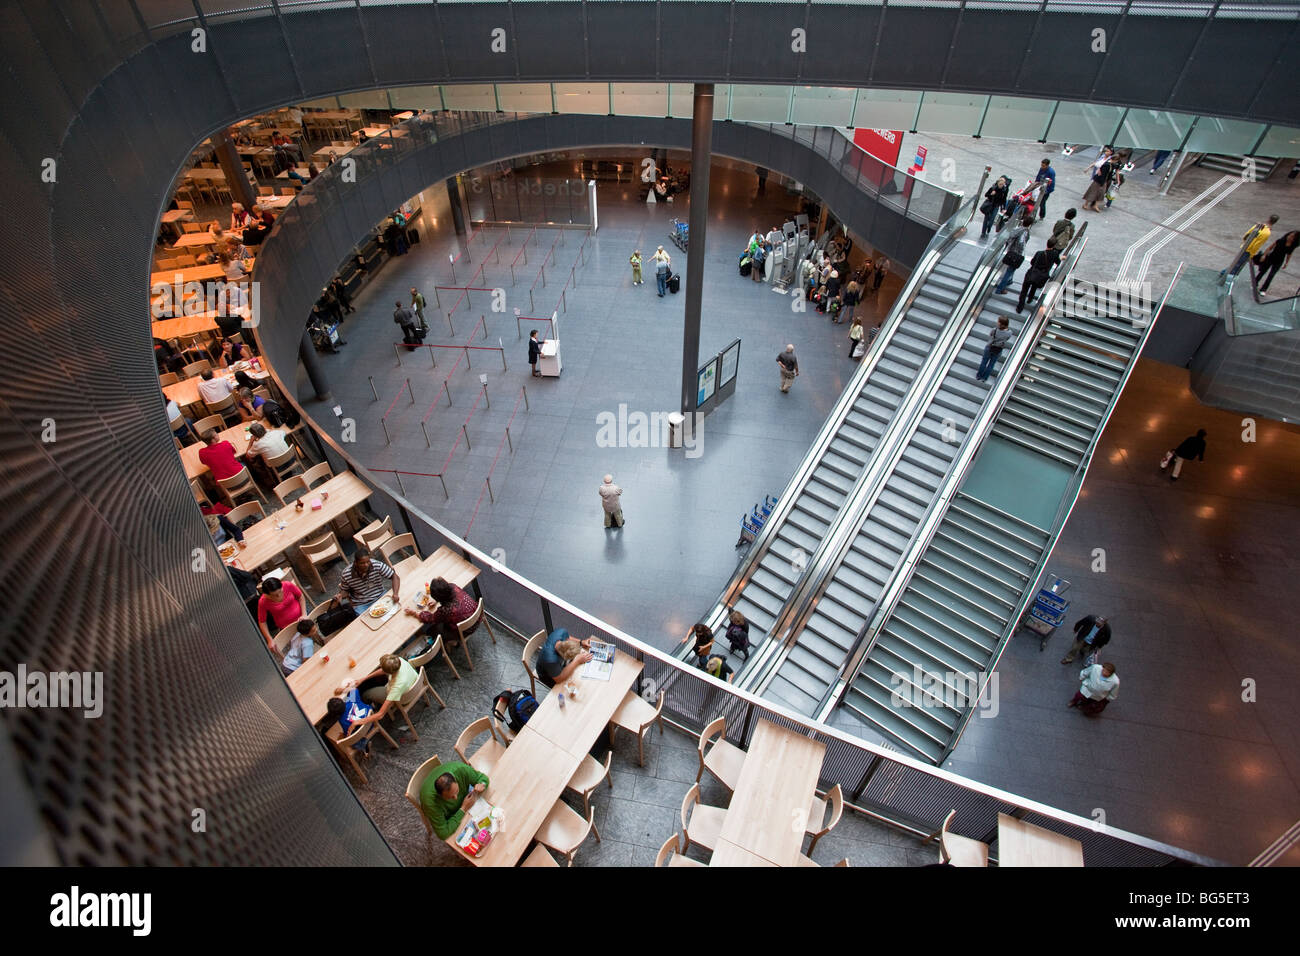 Hall of Zurich Airport, Switzerland, showing Check in, food concourse and shopping area - Stock Image